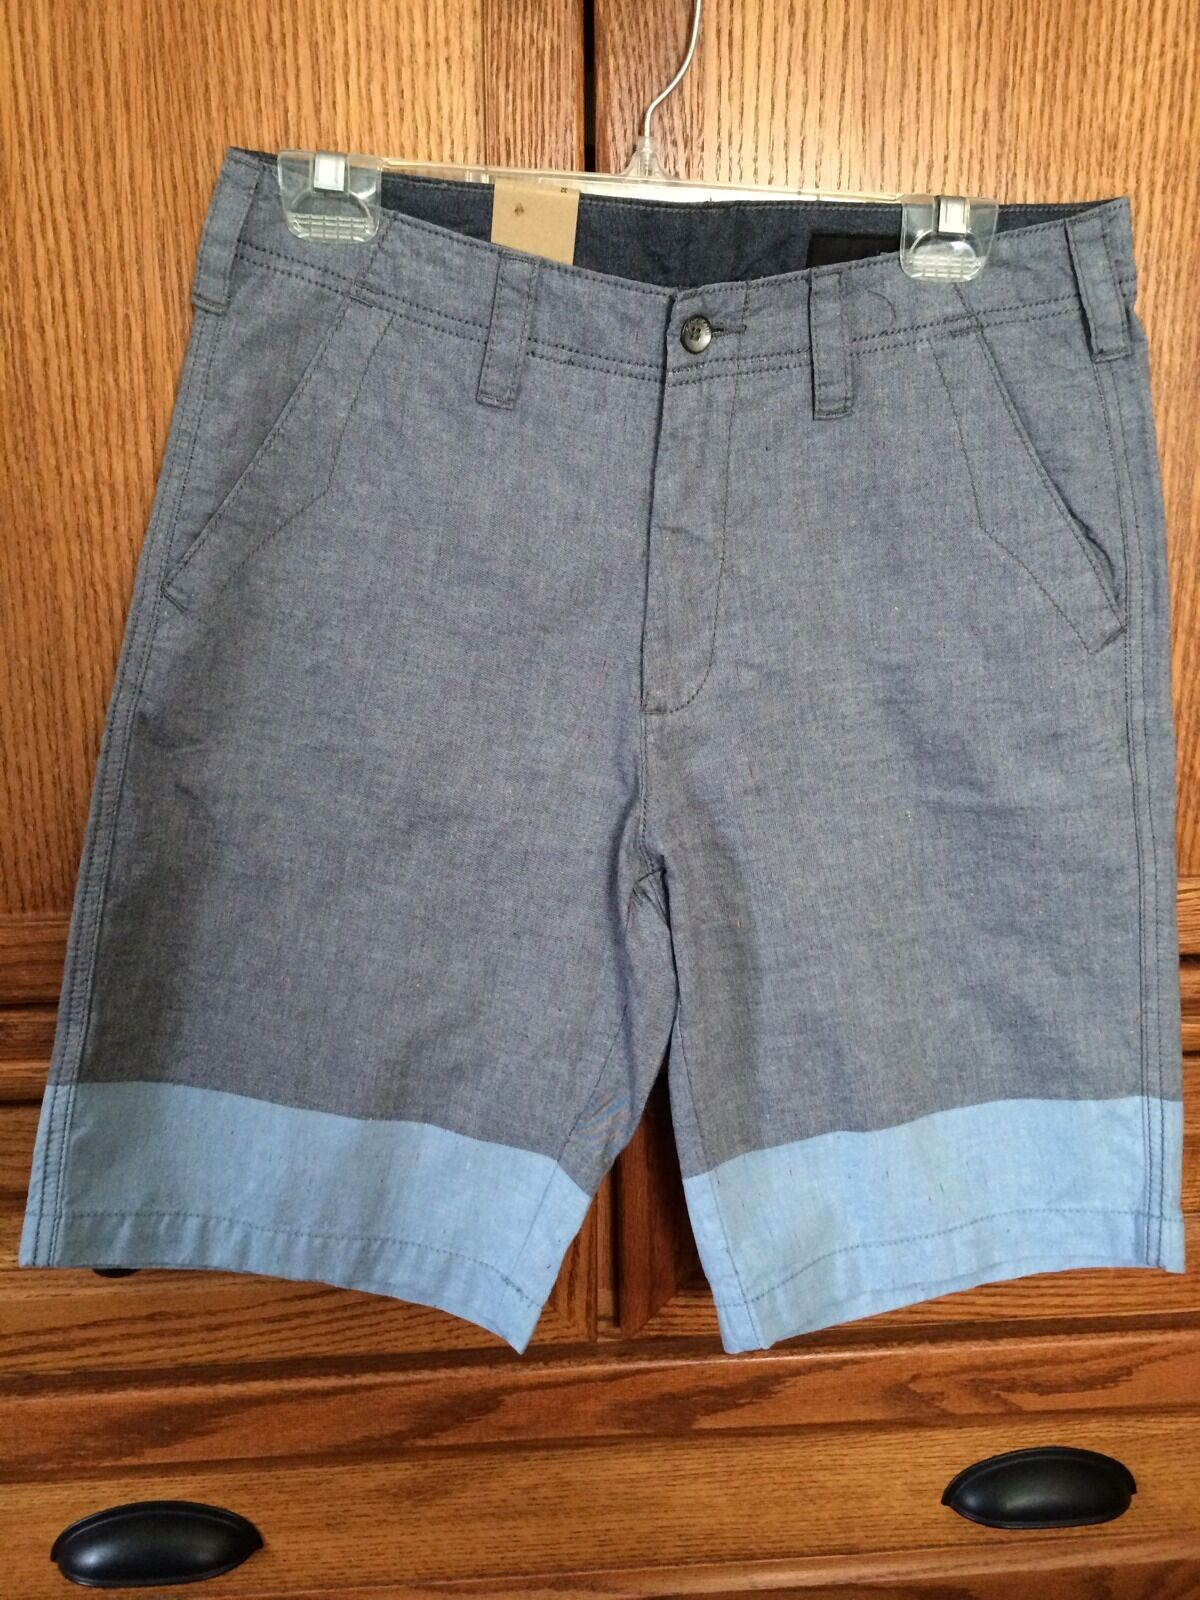 DKNY JEANS Mens Shorts   NWT   Size 32  MSRP